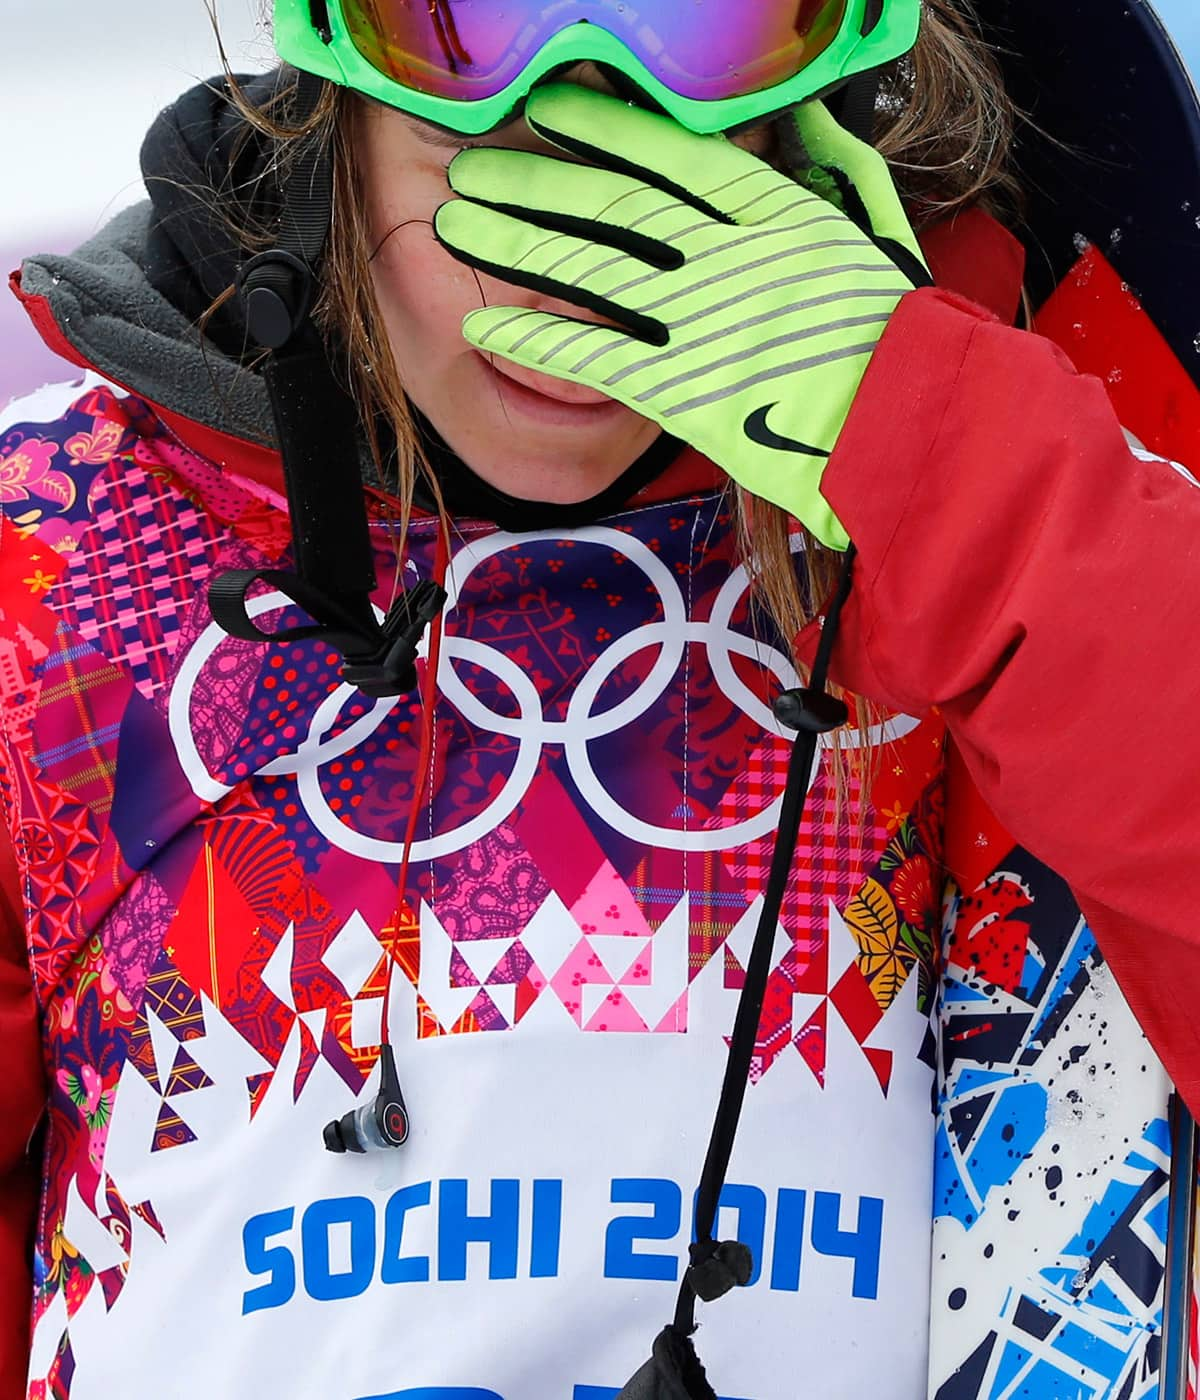 How do you forgive yourself for failing at the Olympics?